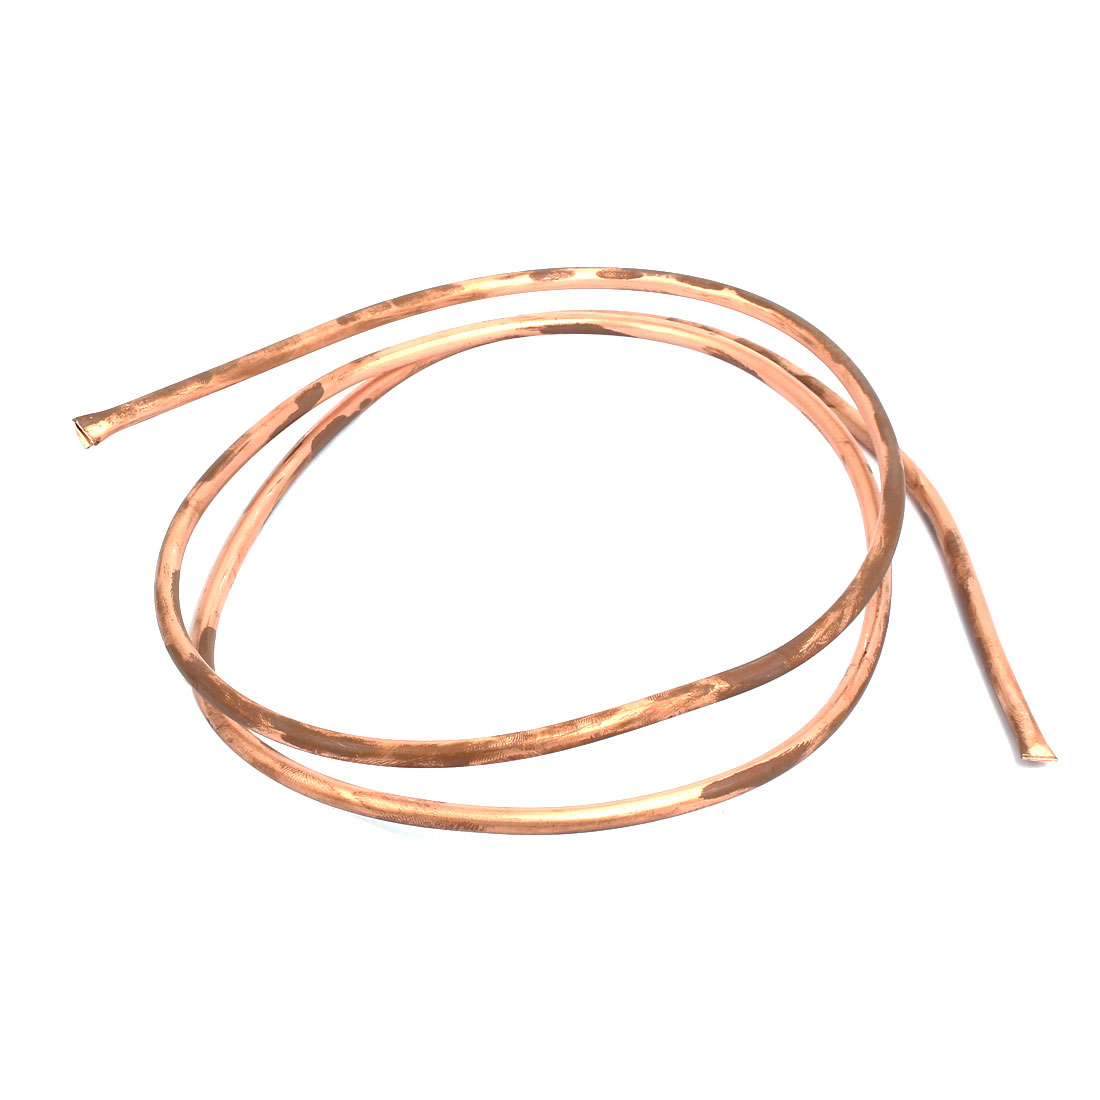 6mm Outer Dia 5 Foot Length Refrigerator Copper Tube Coil